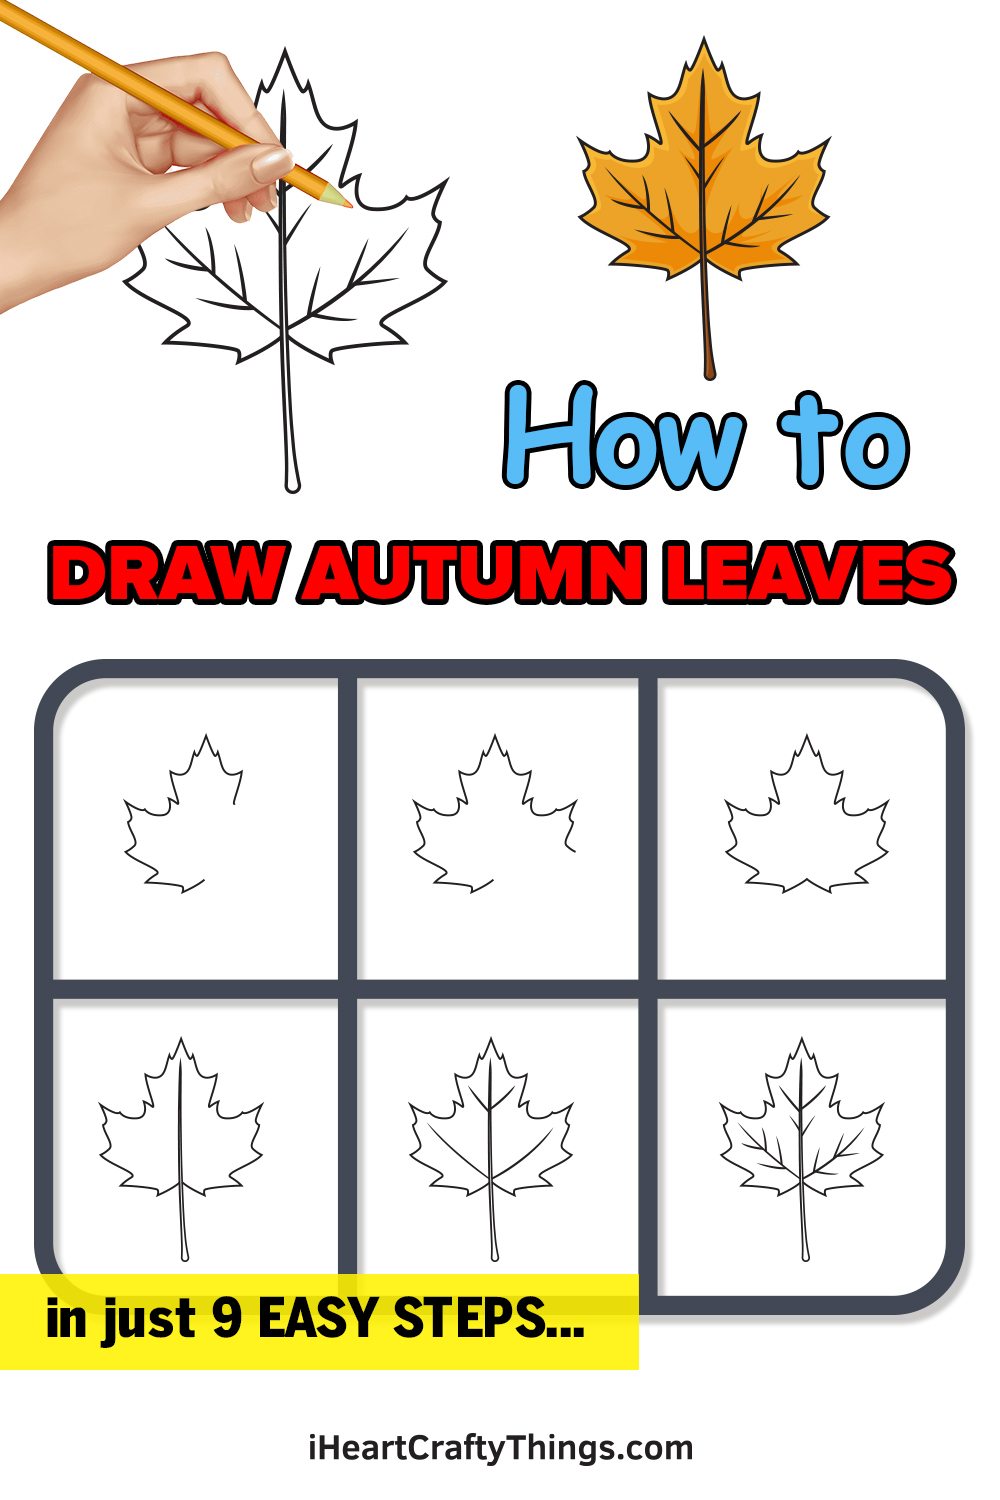 how to draw autumn leaves in 9 easy steps